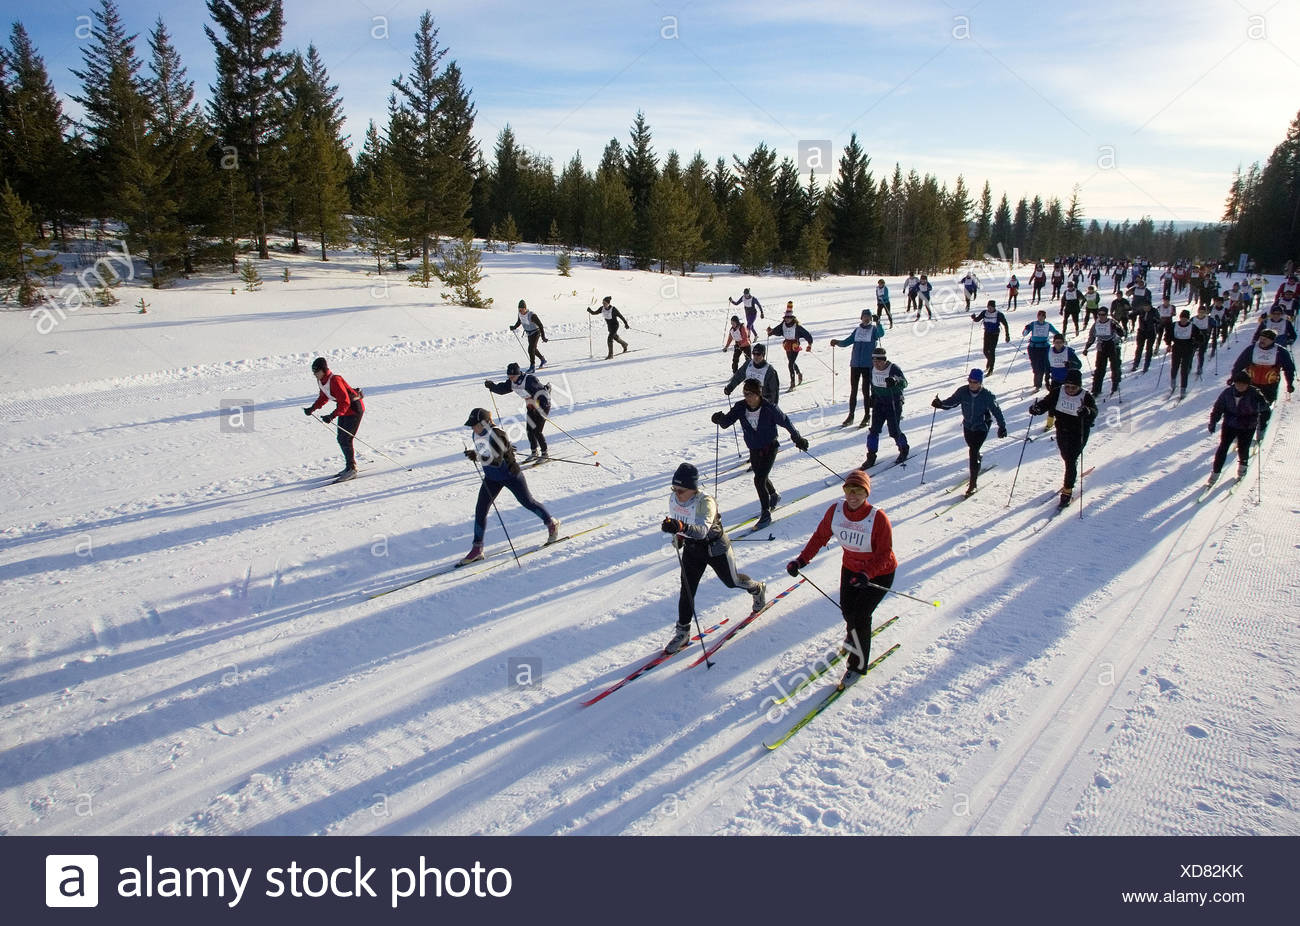 Cross Country Skis Nordic Skis The House Com >> Cross Country Skiing Marathon In 100 Mile House South Cariboo